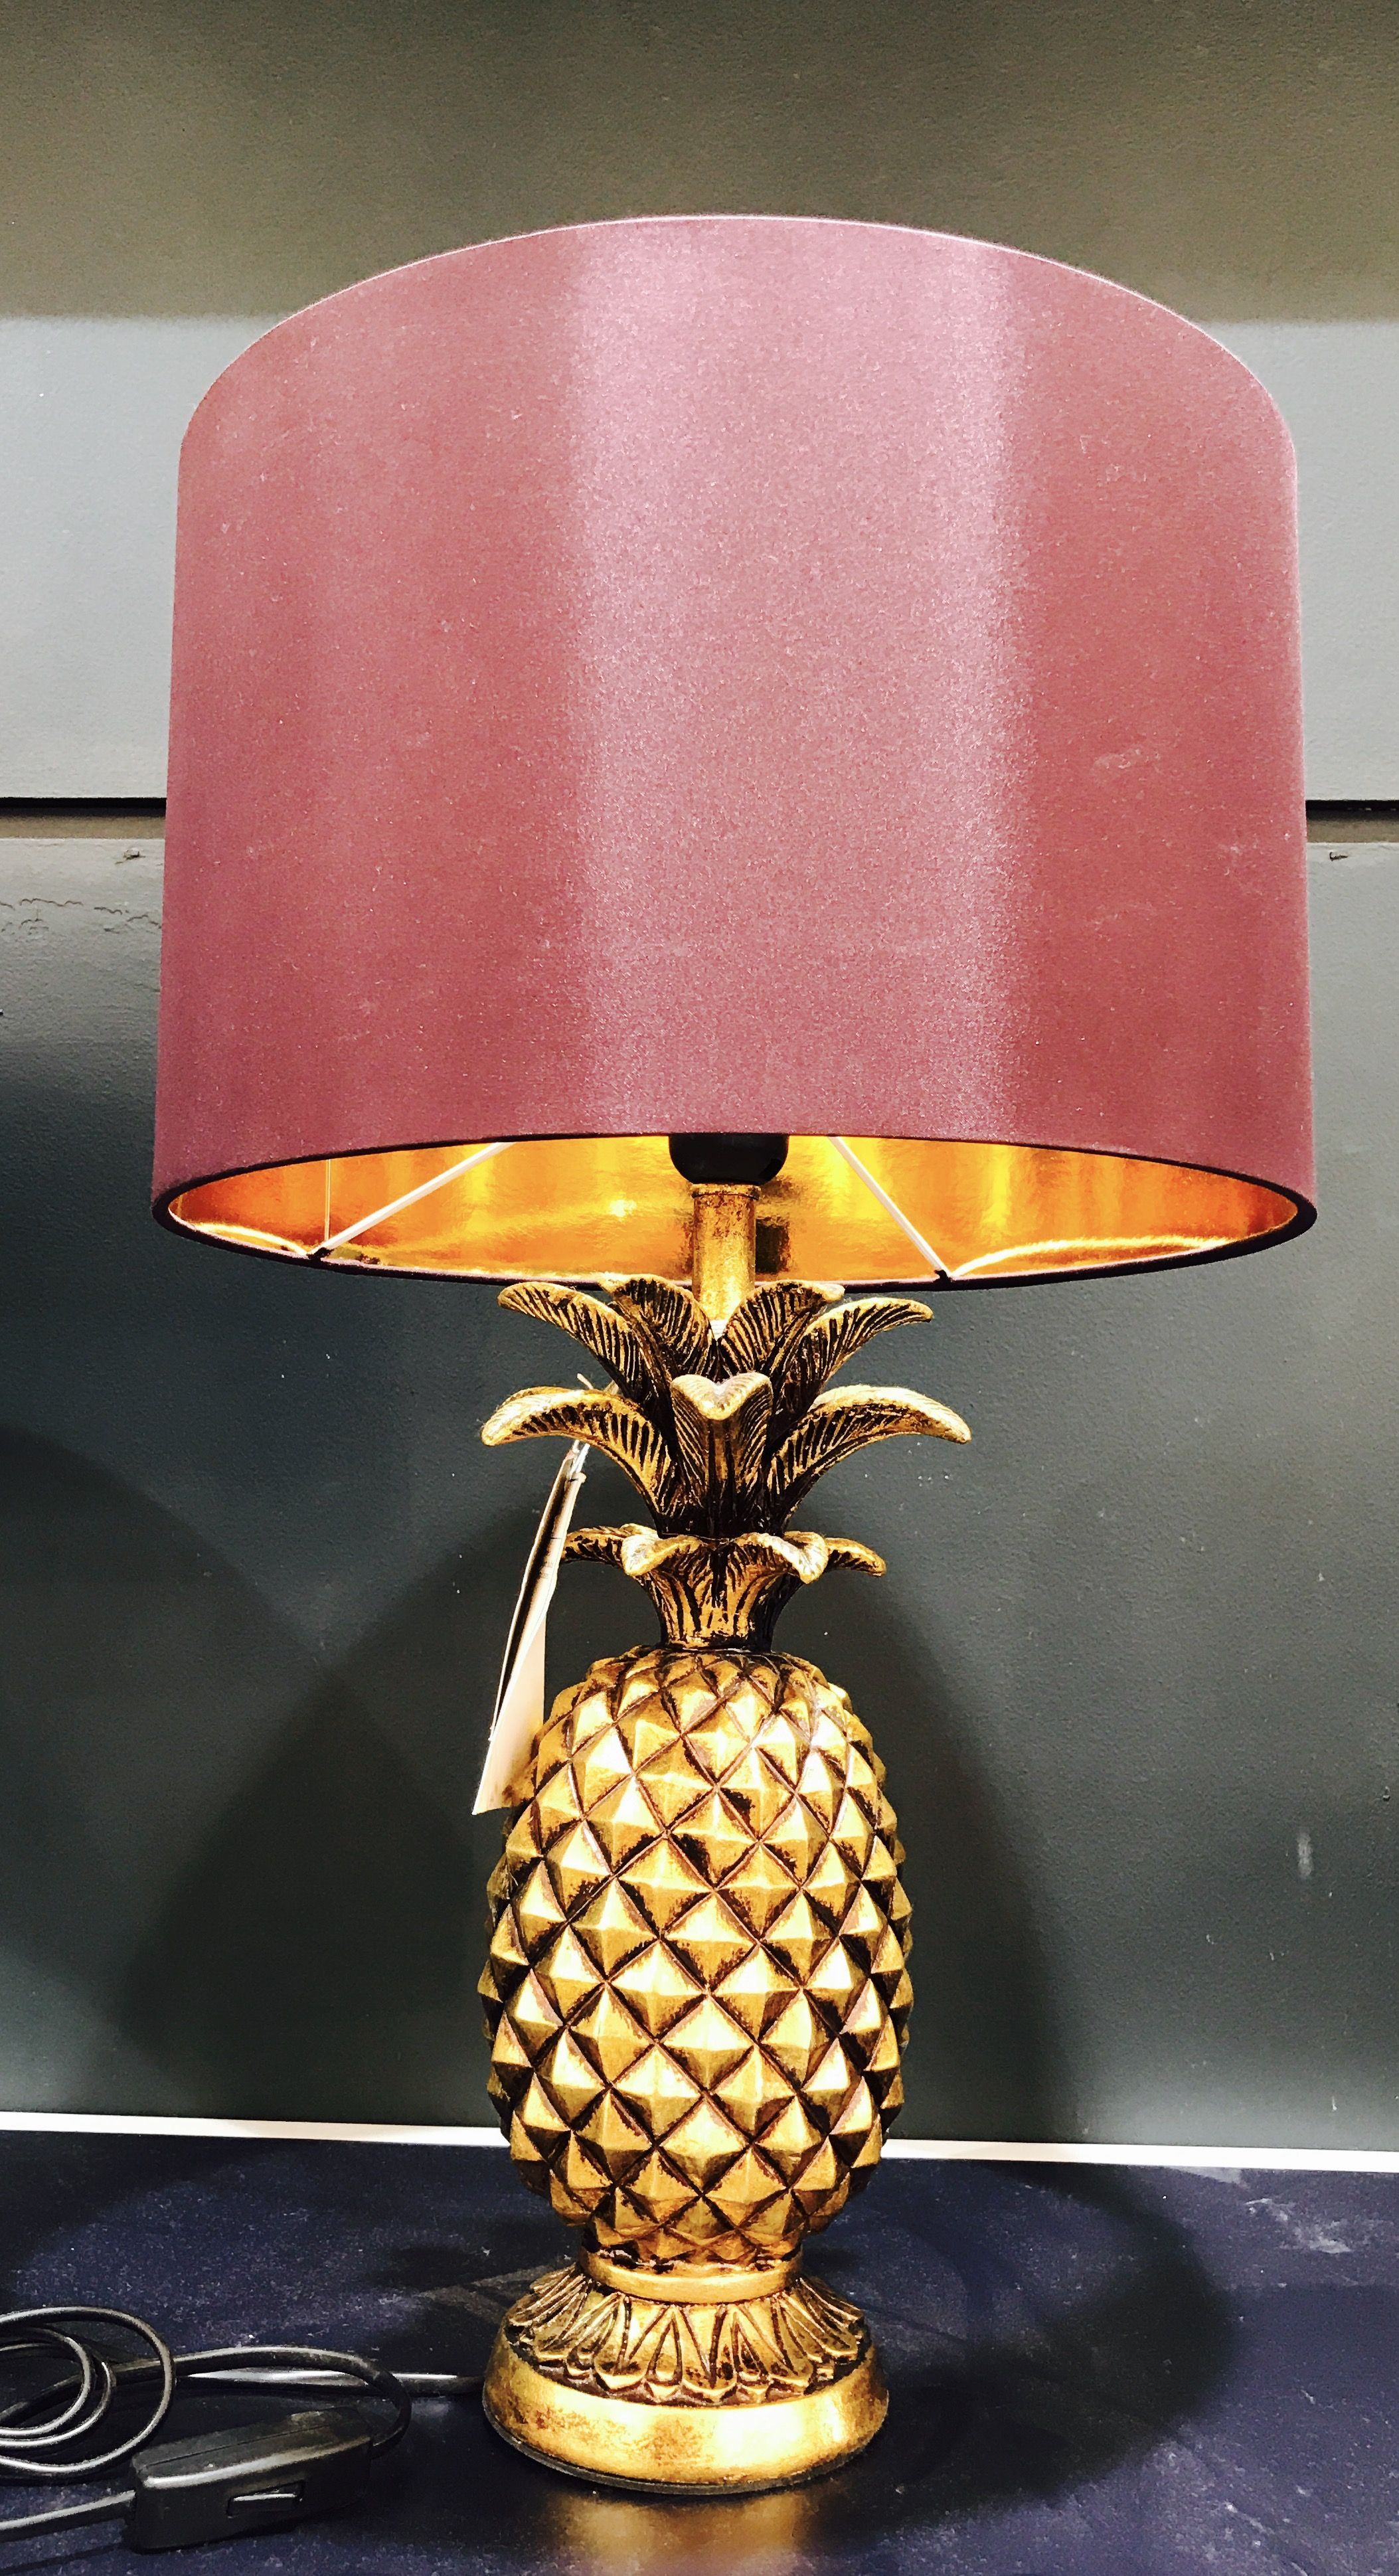 Pin by verla nathaniel on home decor pinterest pineapple lamp pineapple lamp gold pineapple debenhams liverpool the homestead matthew williamson contemporary furniture table lamps butterfly butterflies aloadofball Gallery